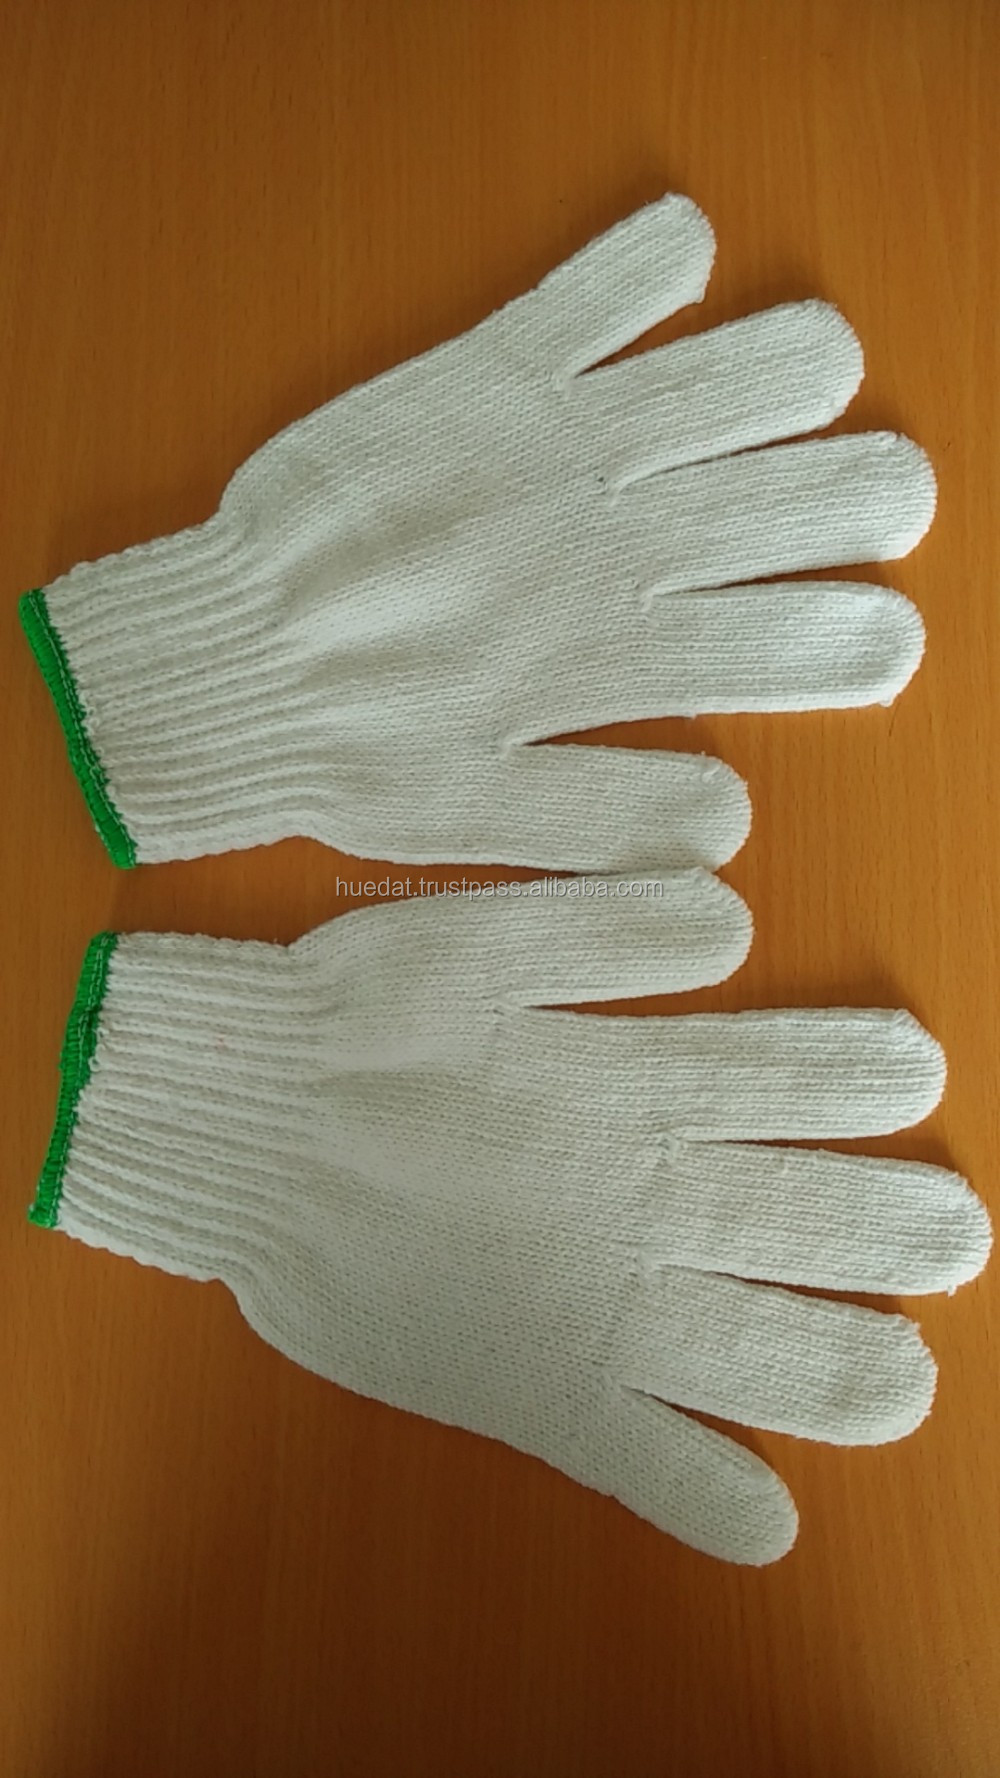 Bleach white working safety gloves, working cotton gloves for export from Vietnam